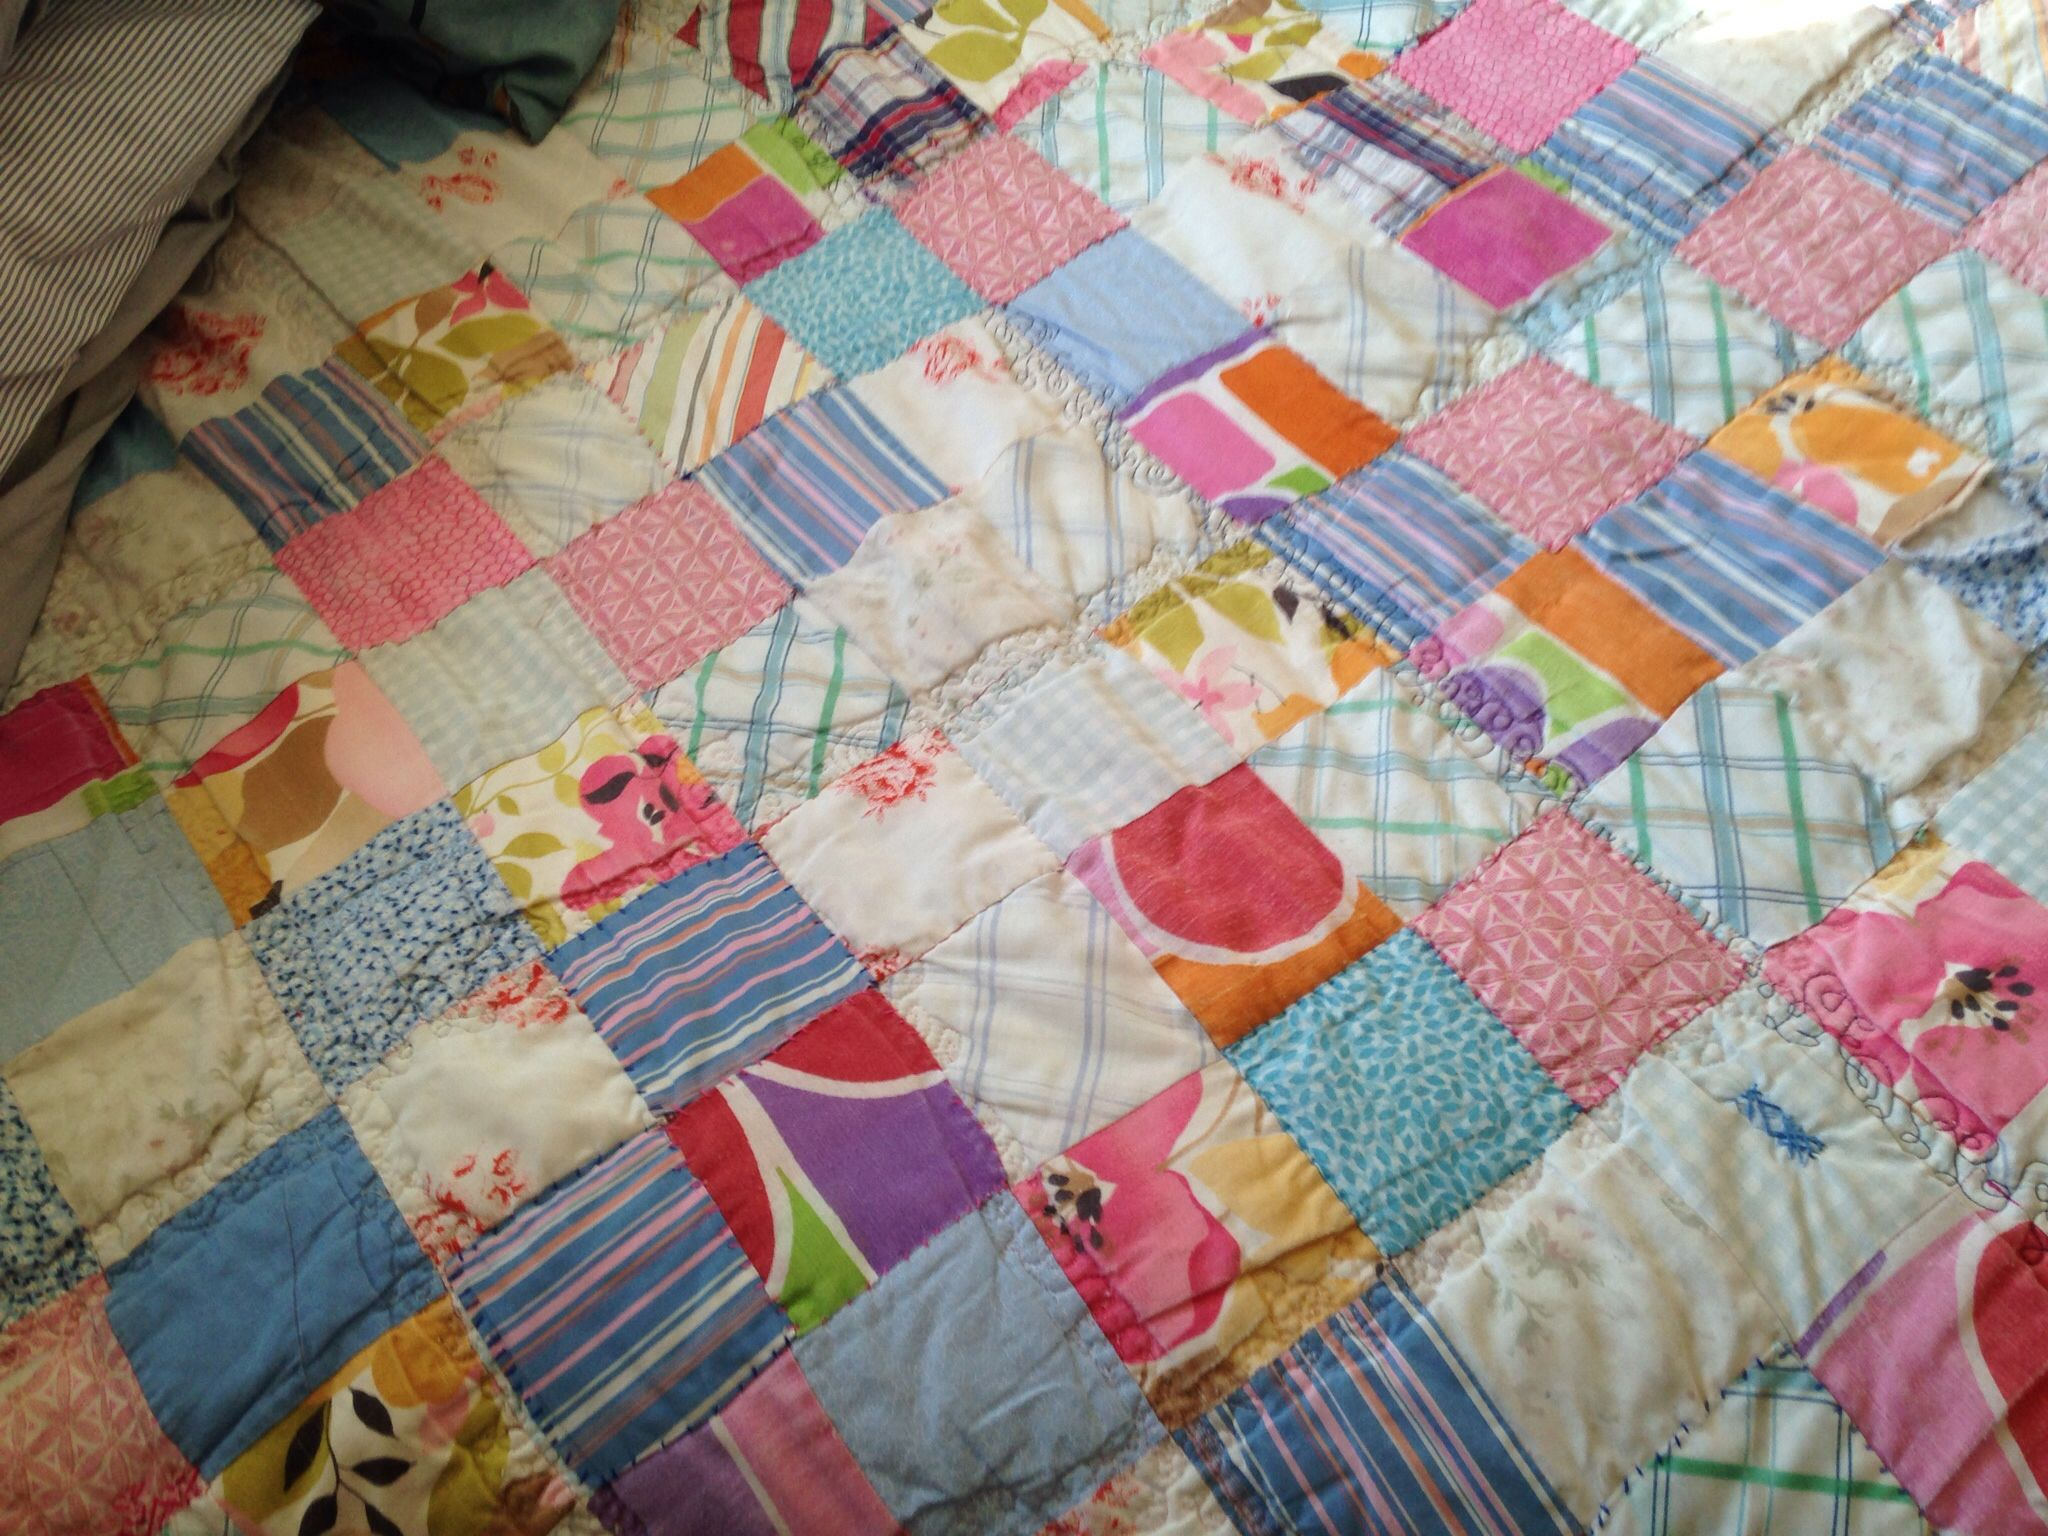 Free-form quilting with machine.